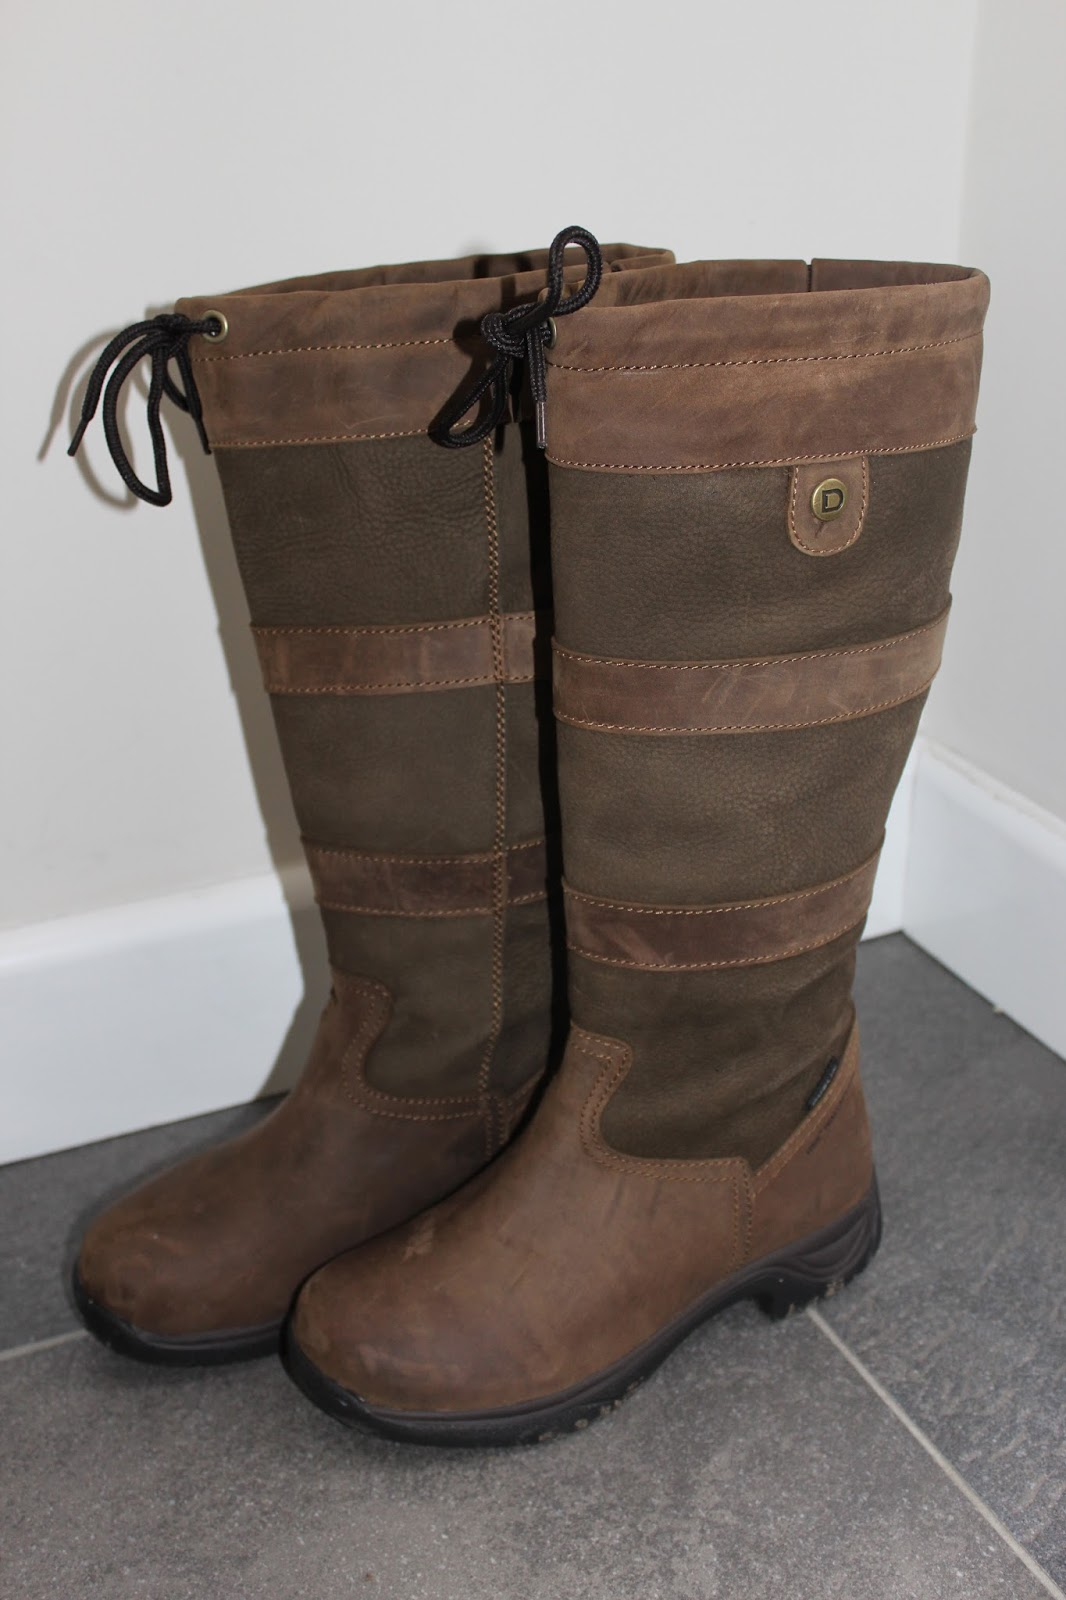 48e1f7f7effb Dublin River Boots Review - Woes of Wellies